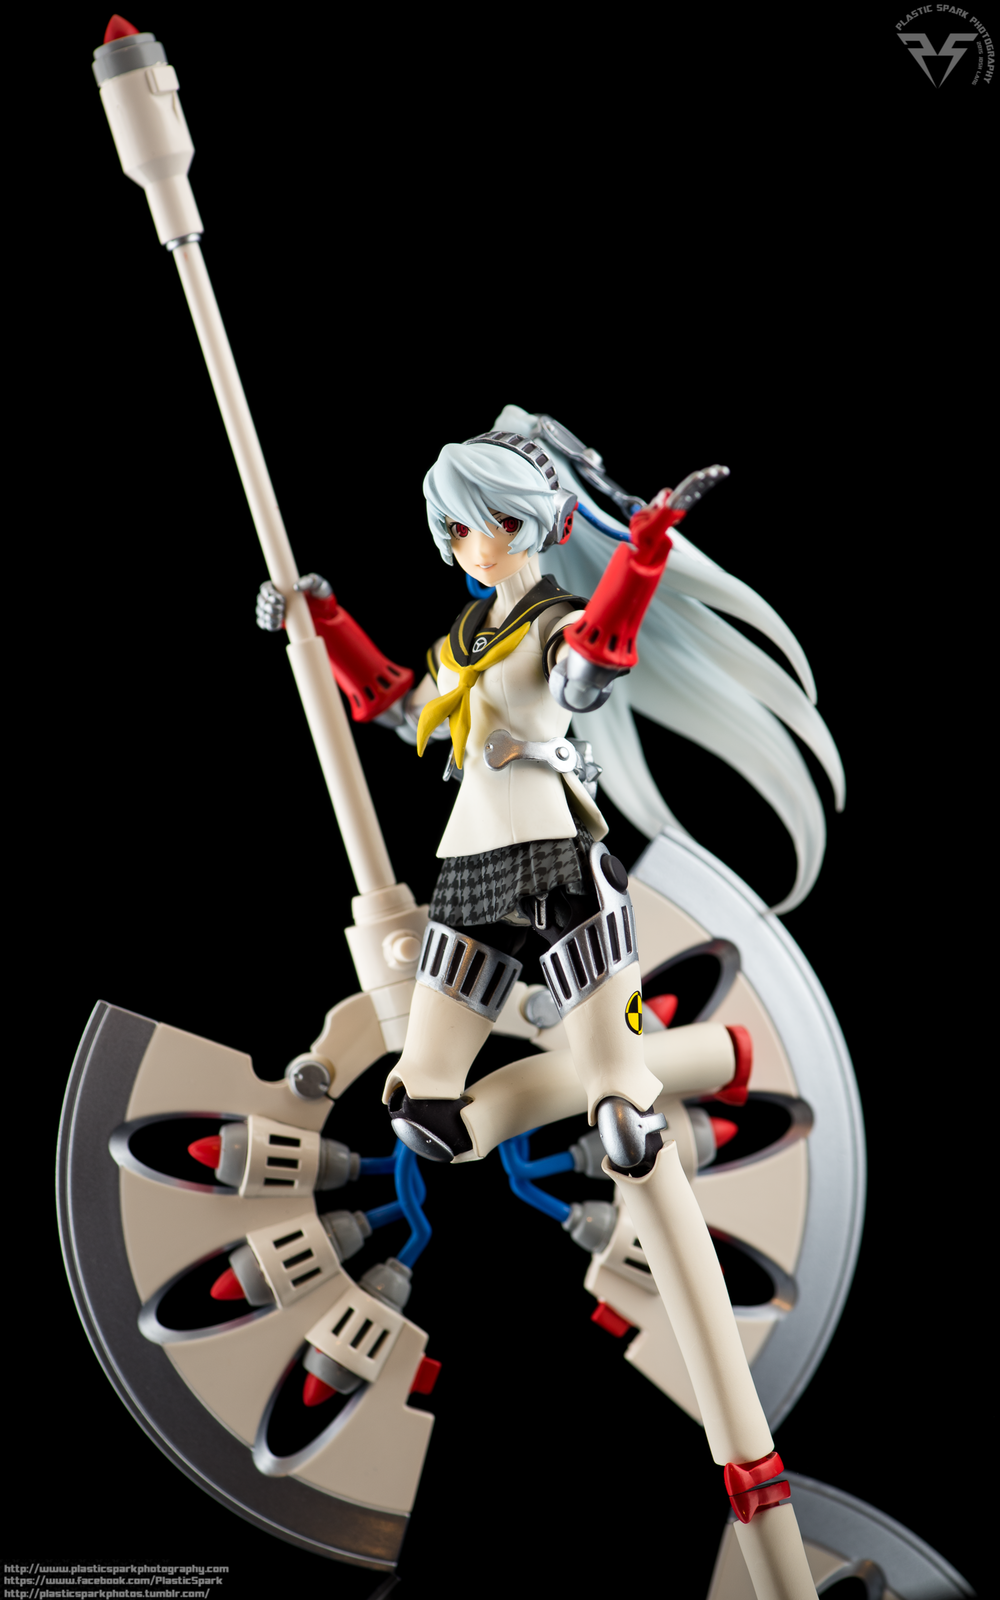 Figma-Labrys-(2-of-33).png